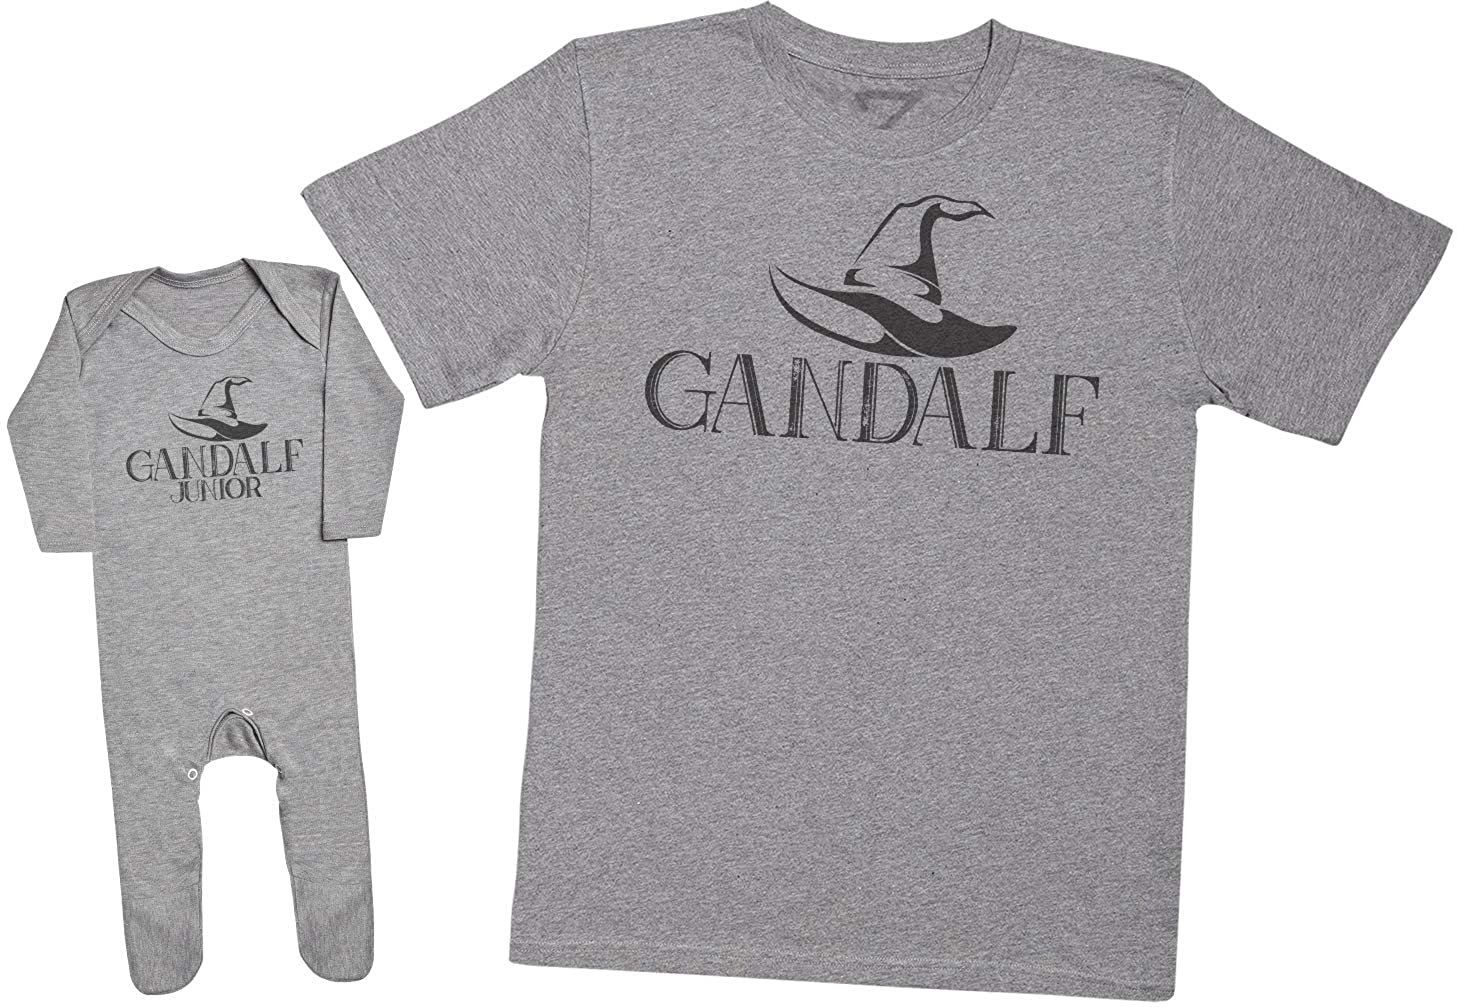 Mens T Shirt /& Baby Romper Gandalf /& Gandalf Junior Matching Father Baby Gift Set